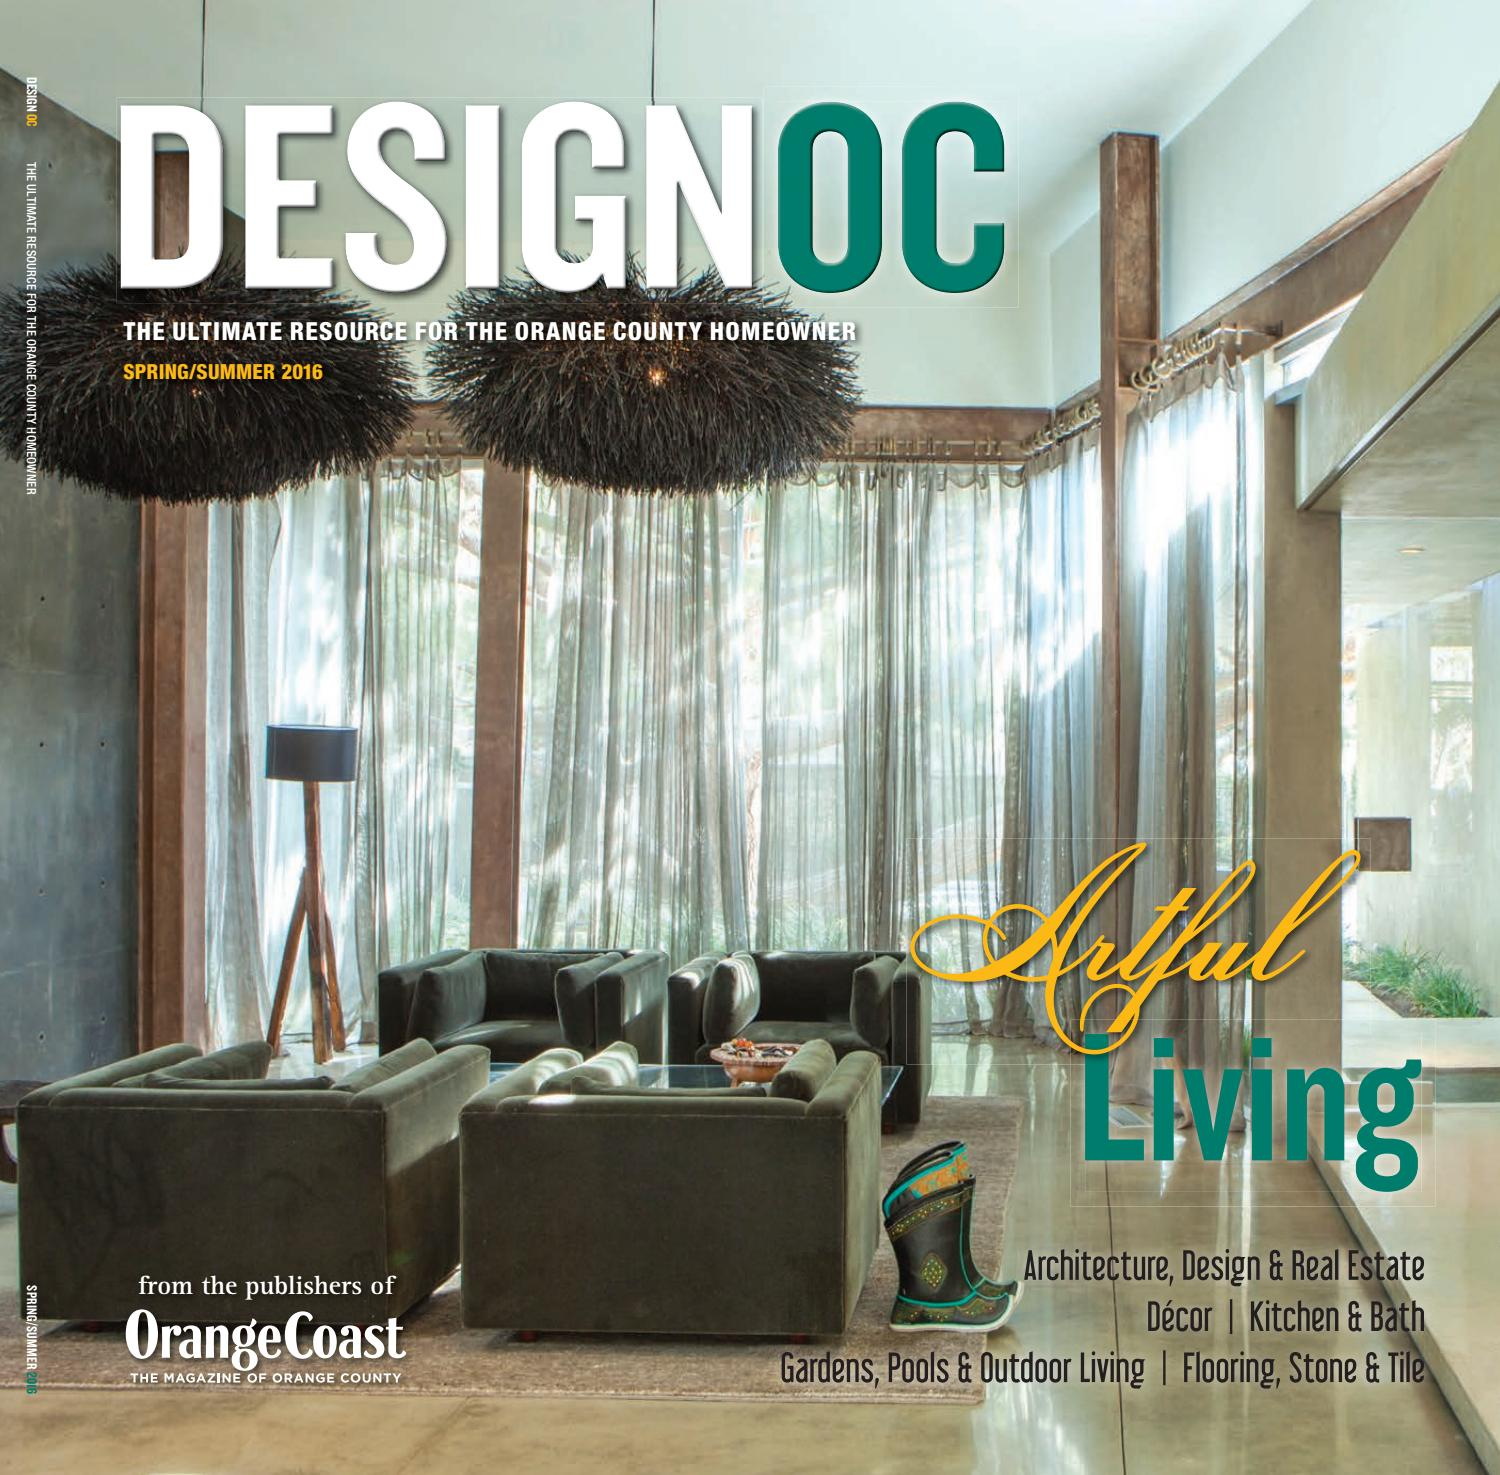 Design Oc Springsummer 2016 By Orange Coast Magazine Issuu - Luxury-silver-and-gold-tiles-by-acquario